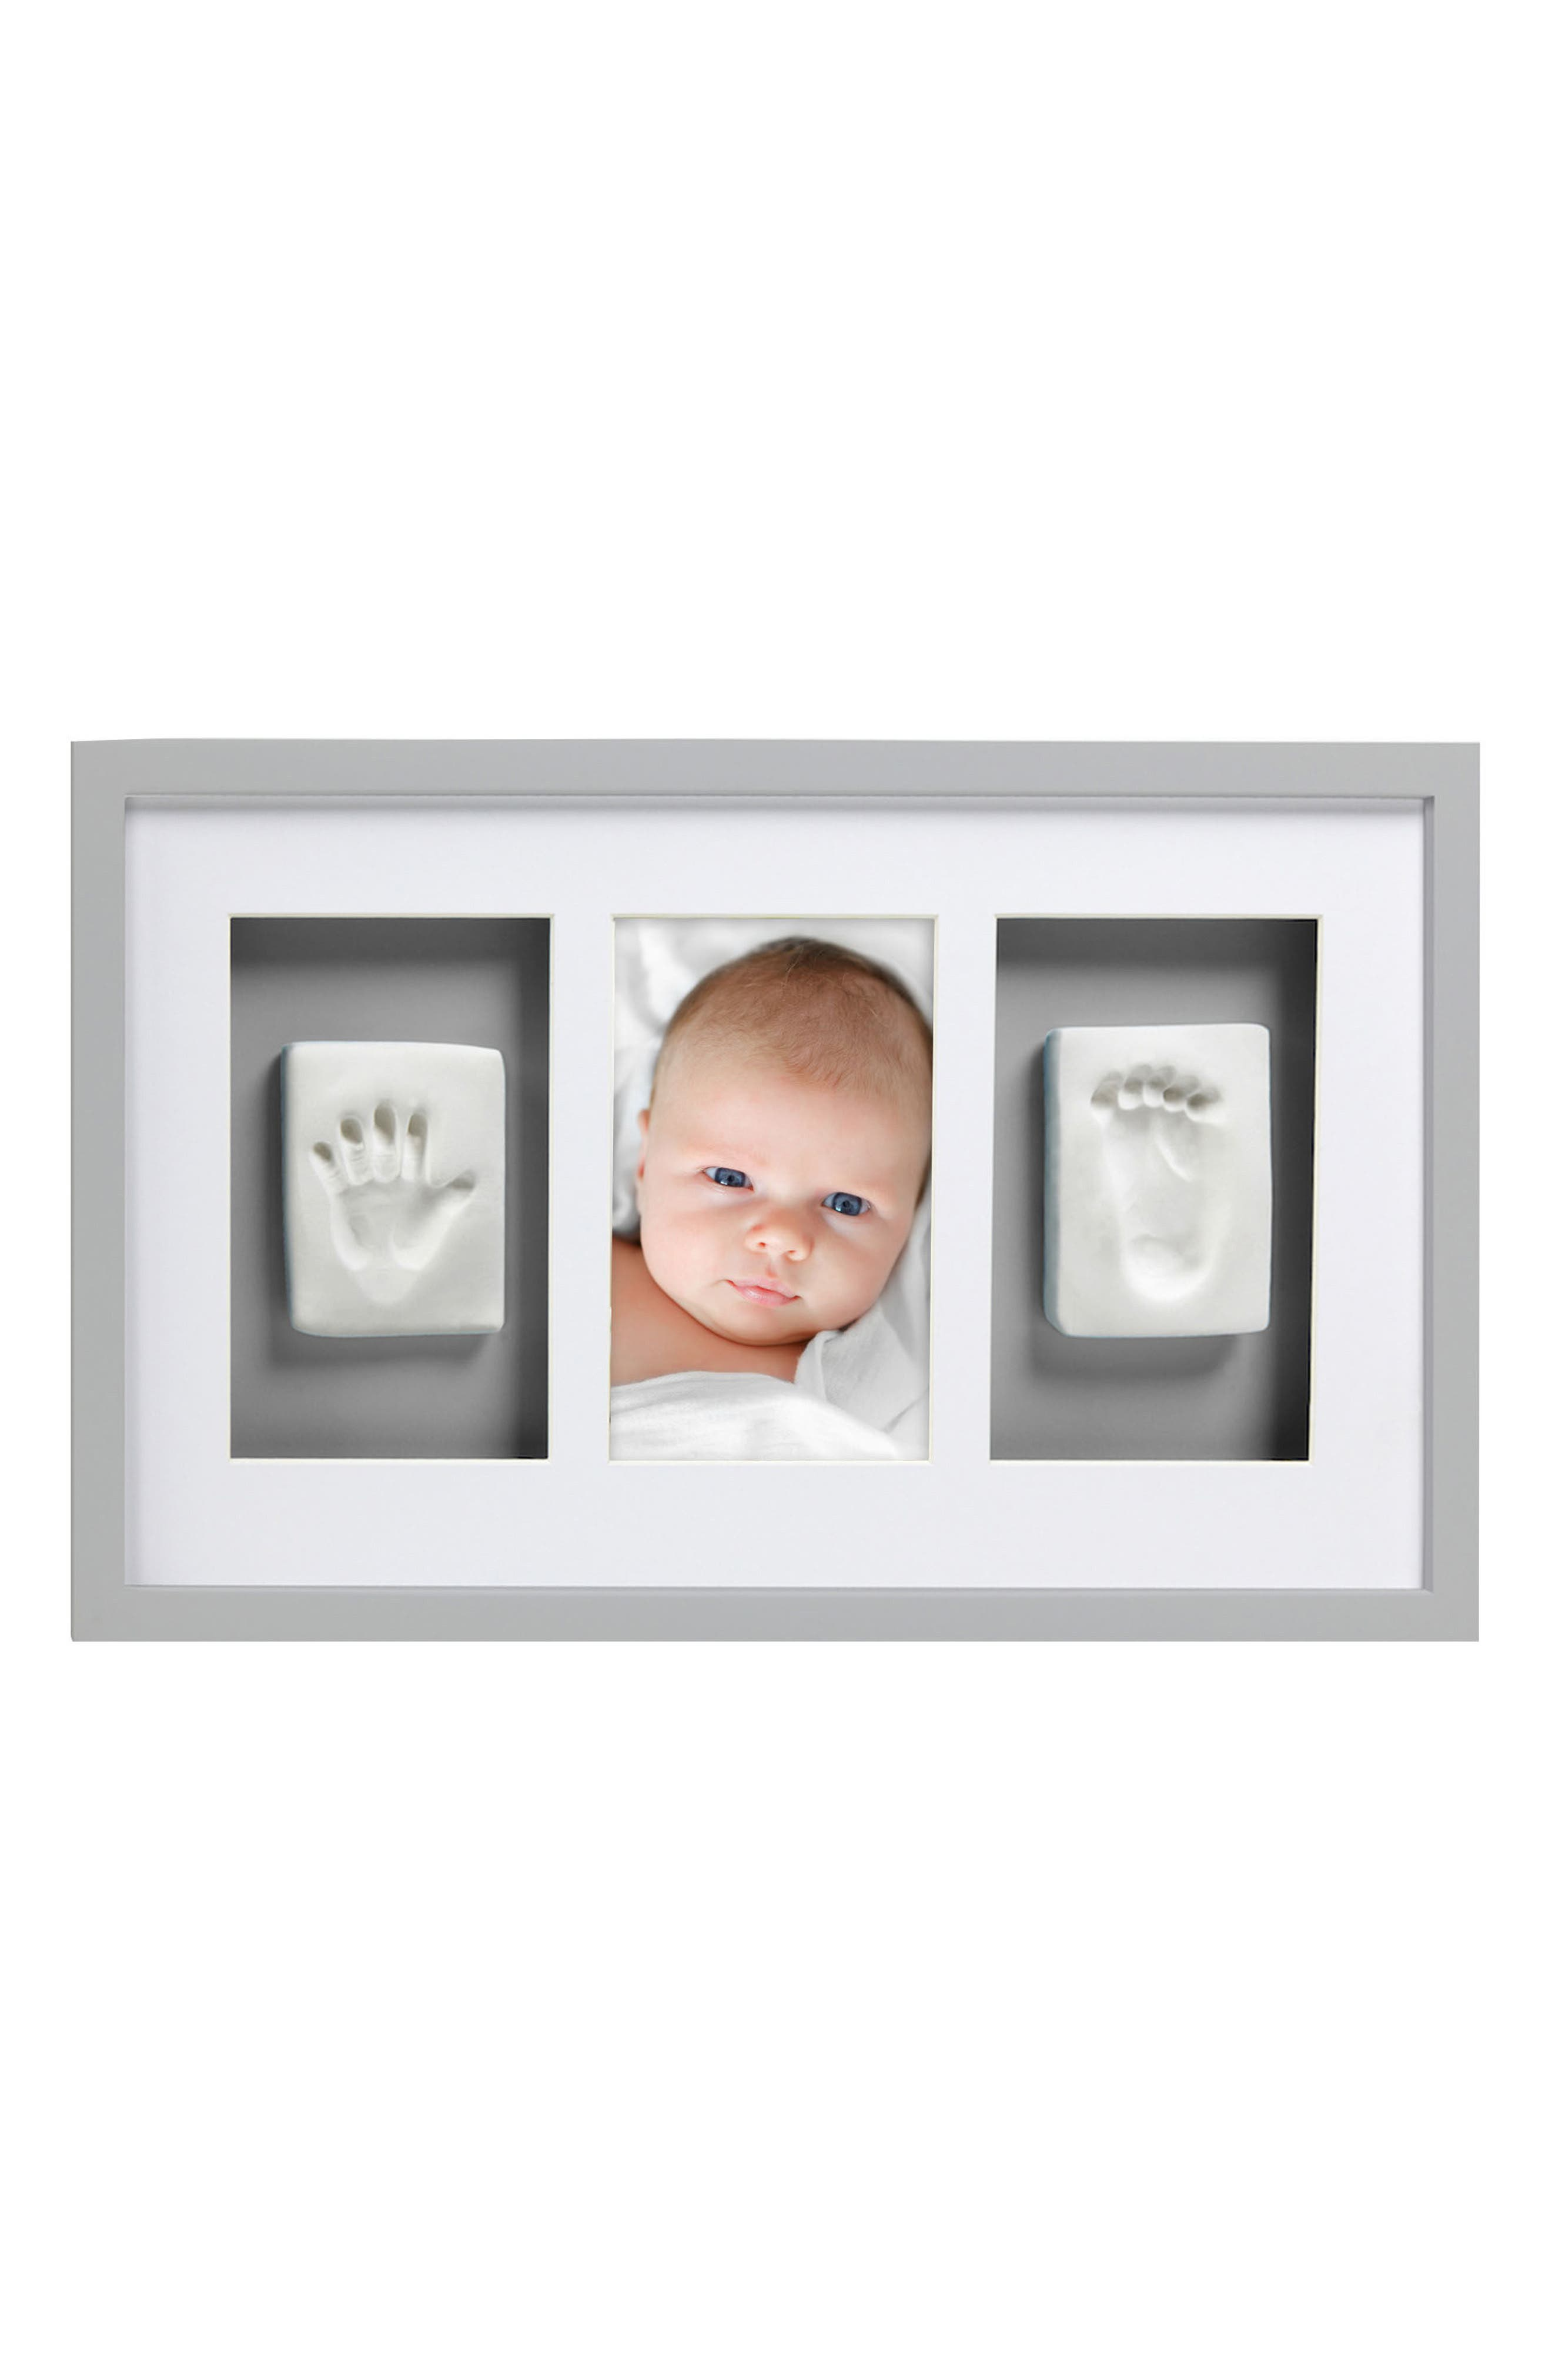 Alternate Image 1 Selected - Pearhead Babyprints Deluxe Wall Frame Kit